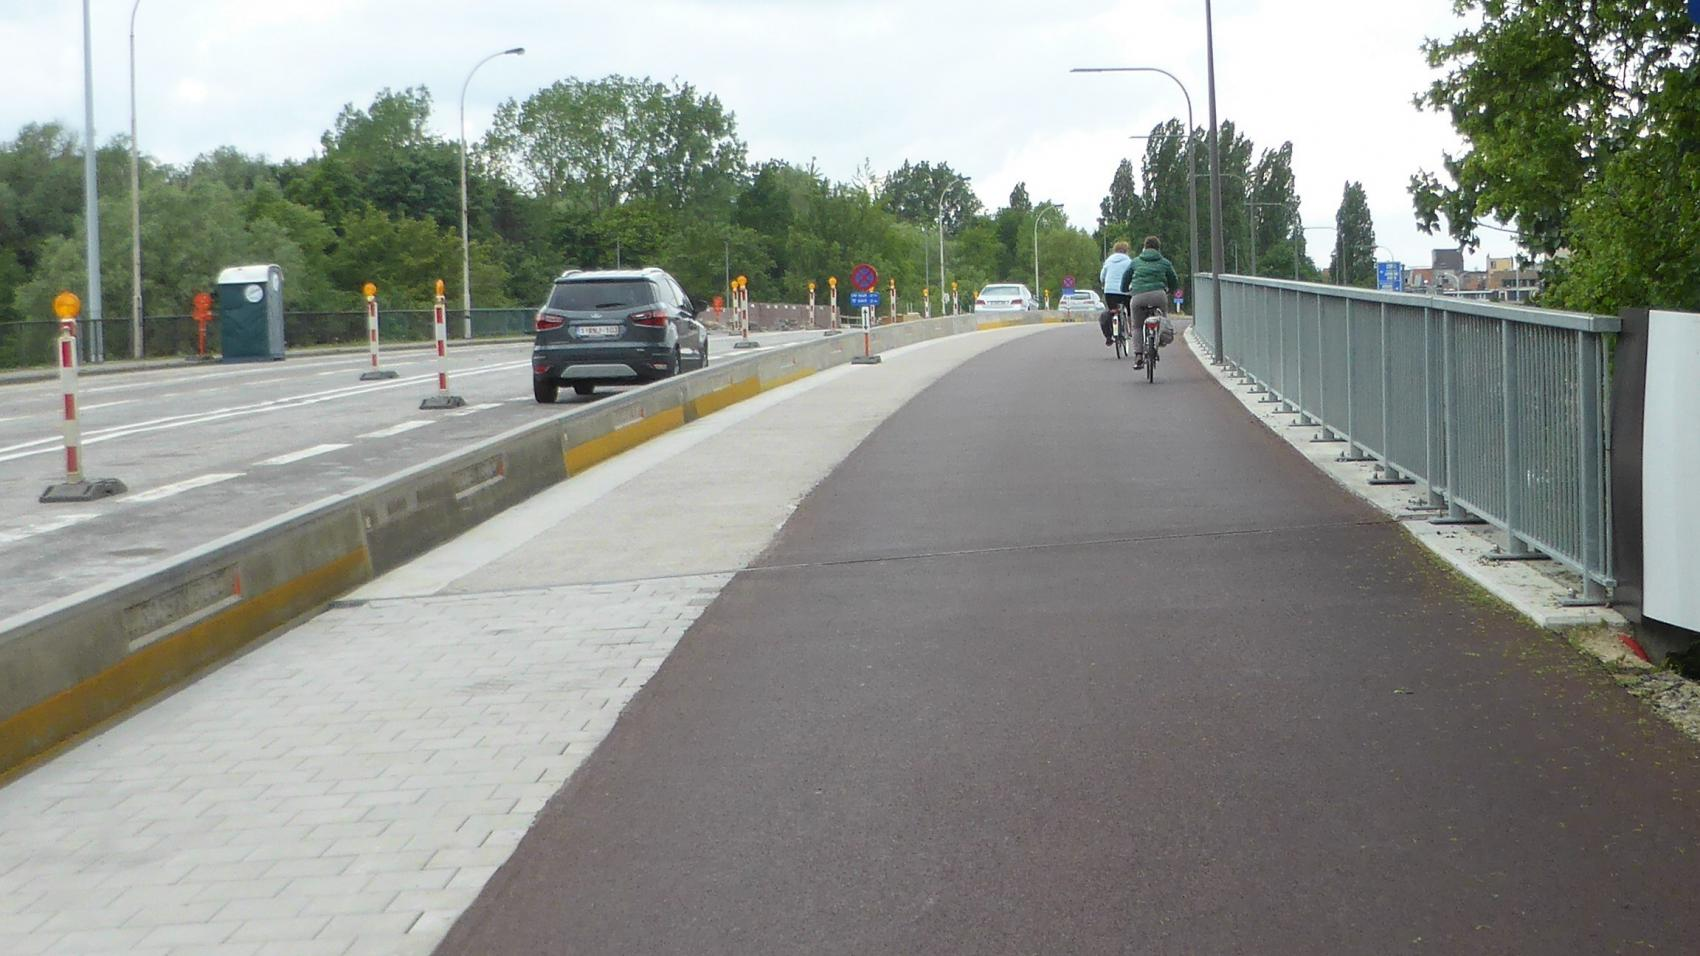 The same section now, upgraded to bidirectional cycle path at the expense of parking places